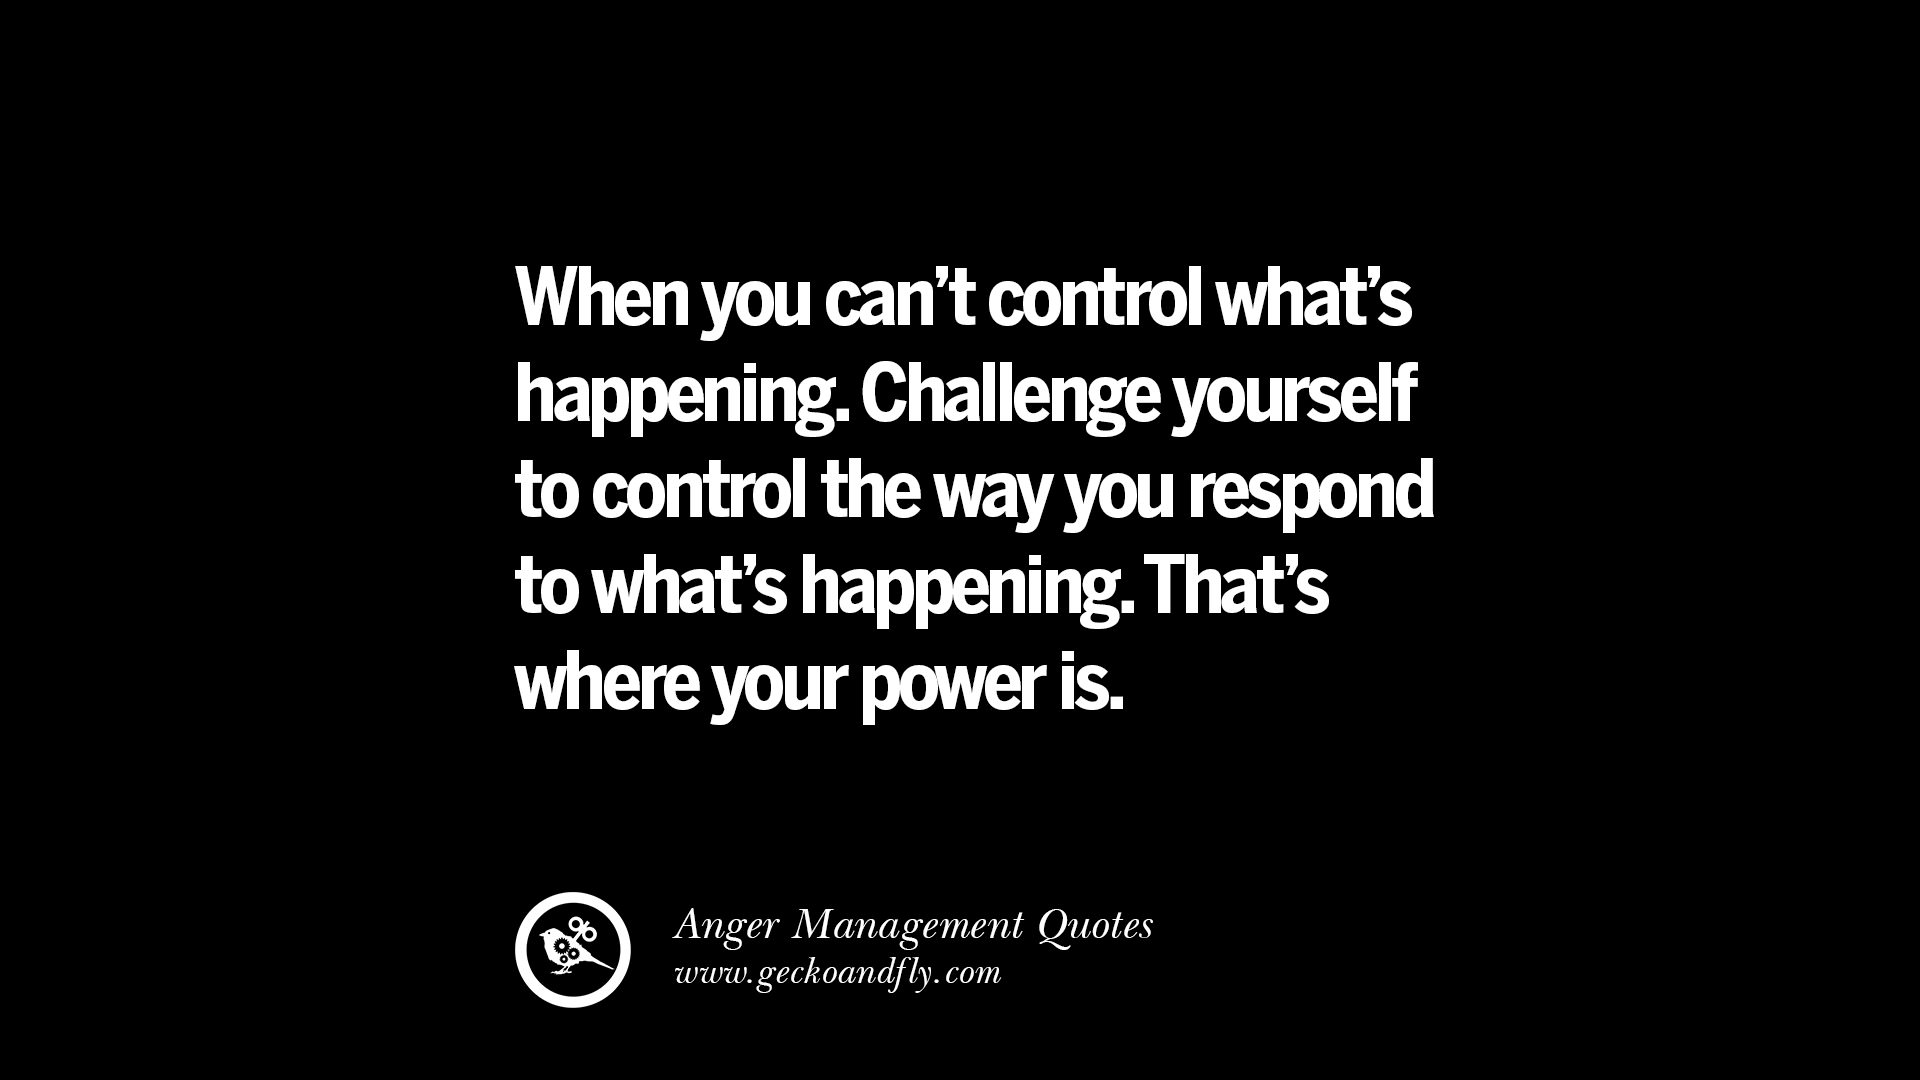 41 quotes on anger management, controlling anger, and relieving stresswhen you can\u0027t control what\u0027s happening challenge yourself to control the way you respond to what\u0027s happening that\u0027s where your power is